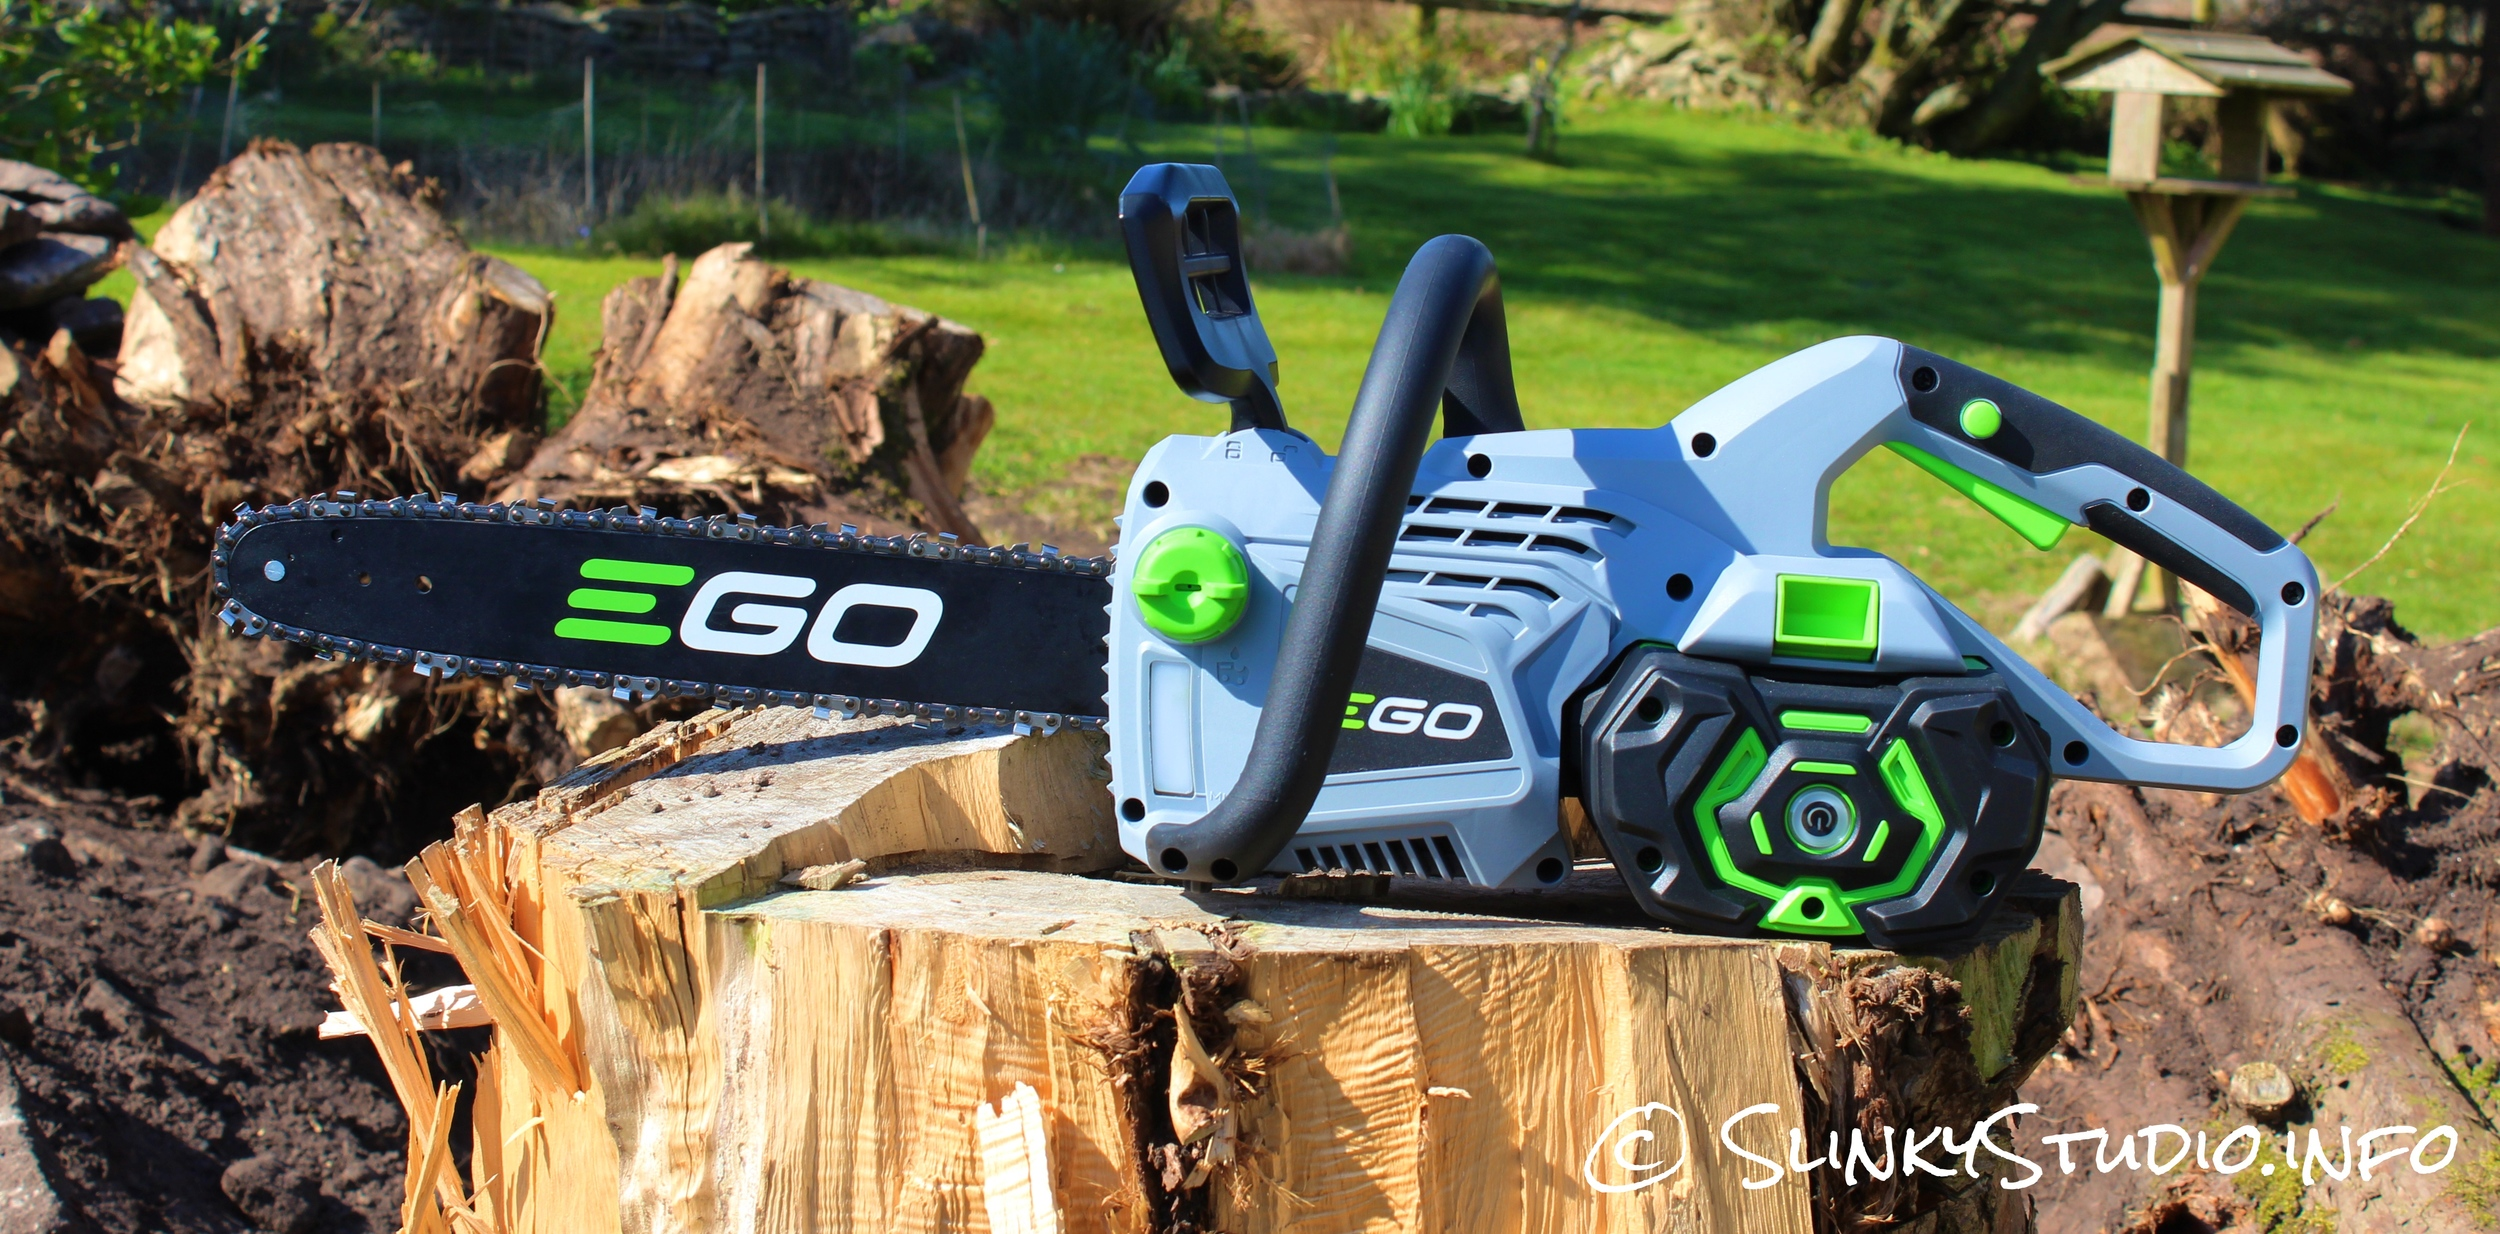 EGO Power+ Cordless Chainsaw Side View